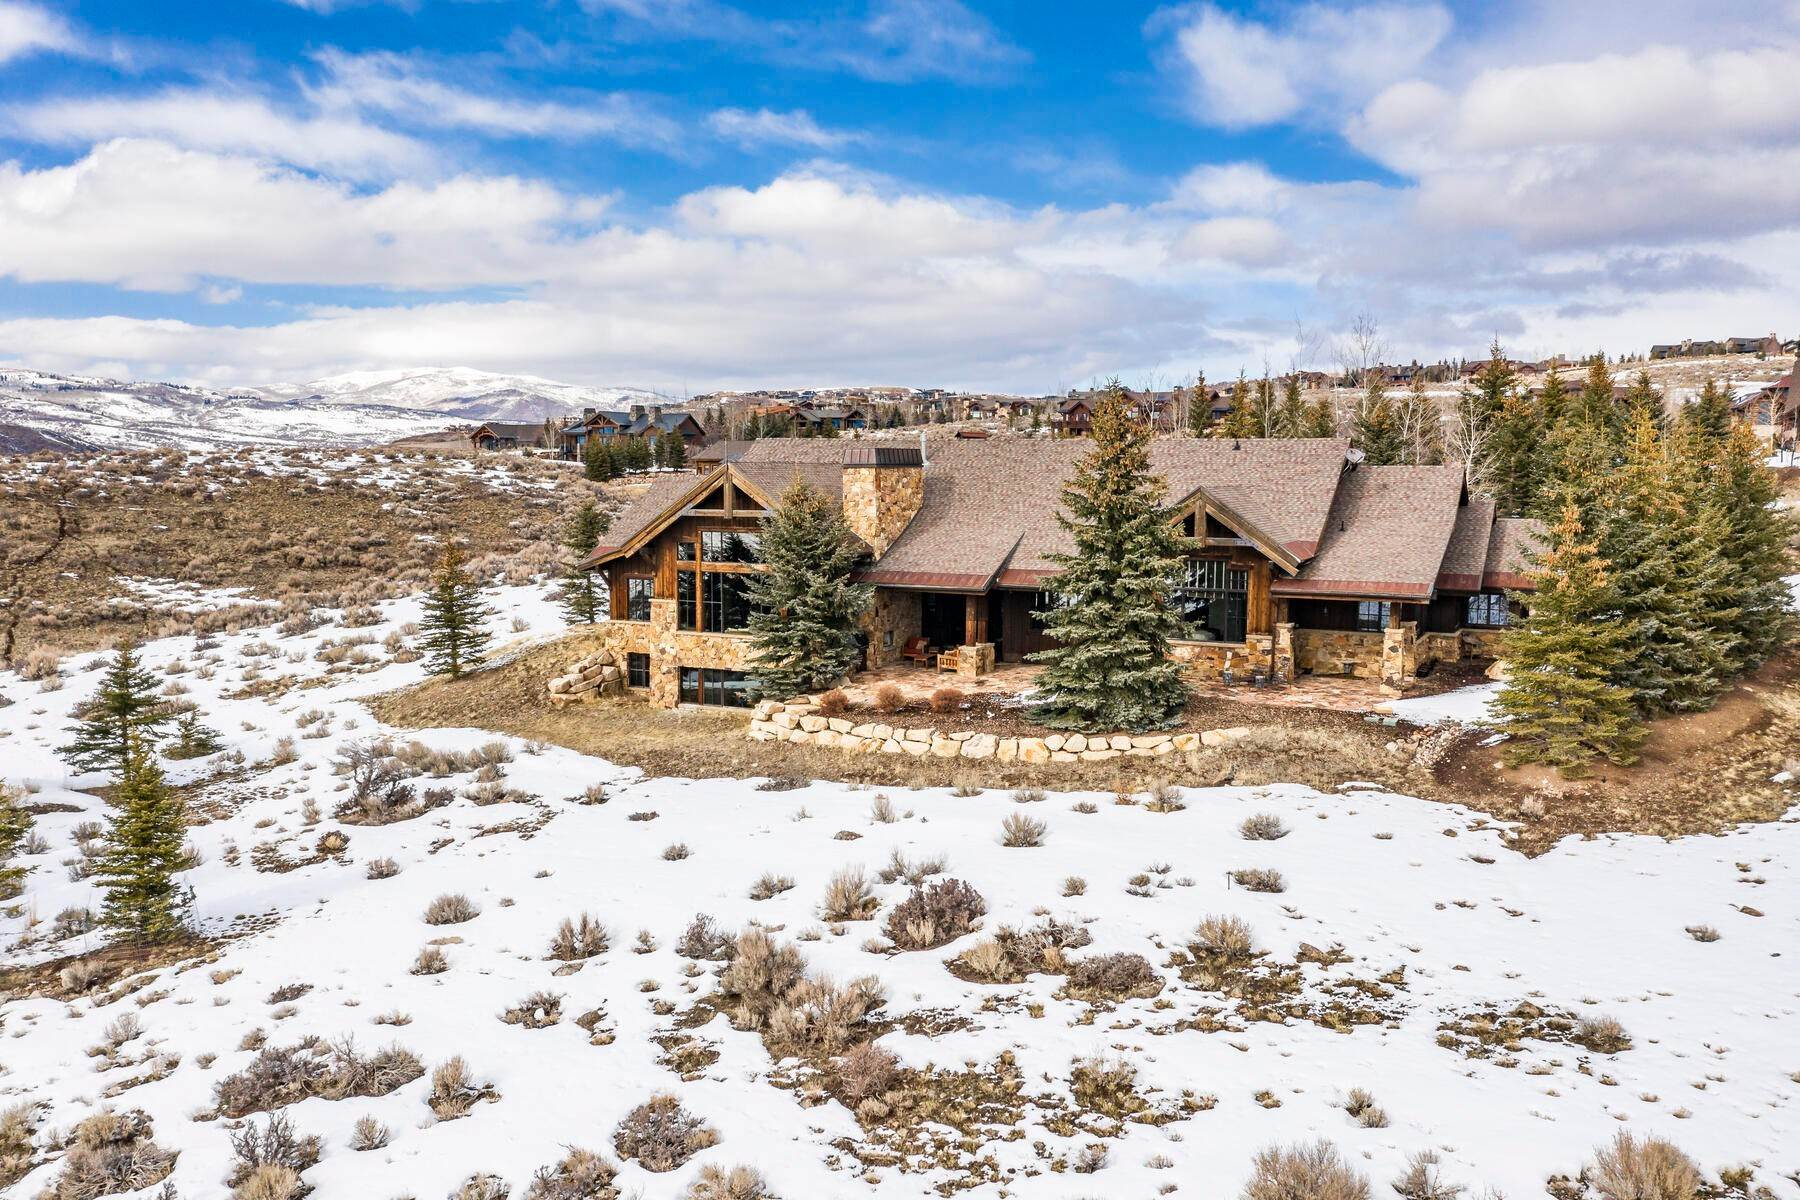 Single Family Homes for Sale at Seclusion, Views, Full Membership Available In Promontory 7701 N West Hills Trail Park City, Utah 84098 United States